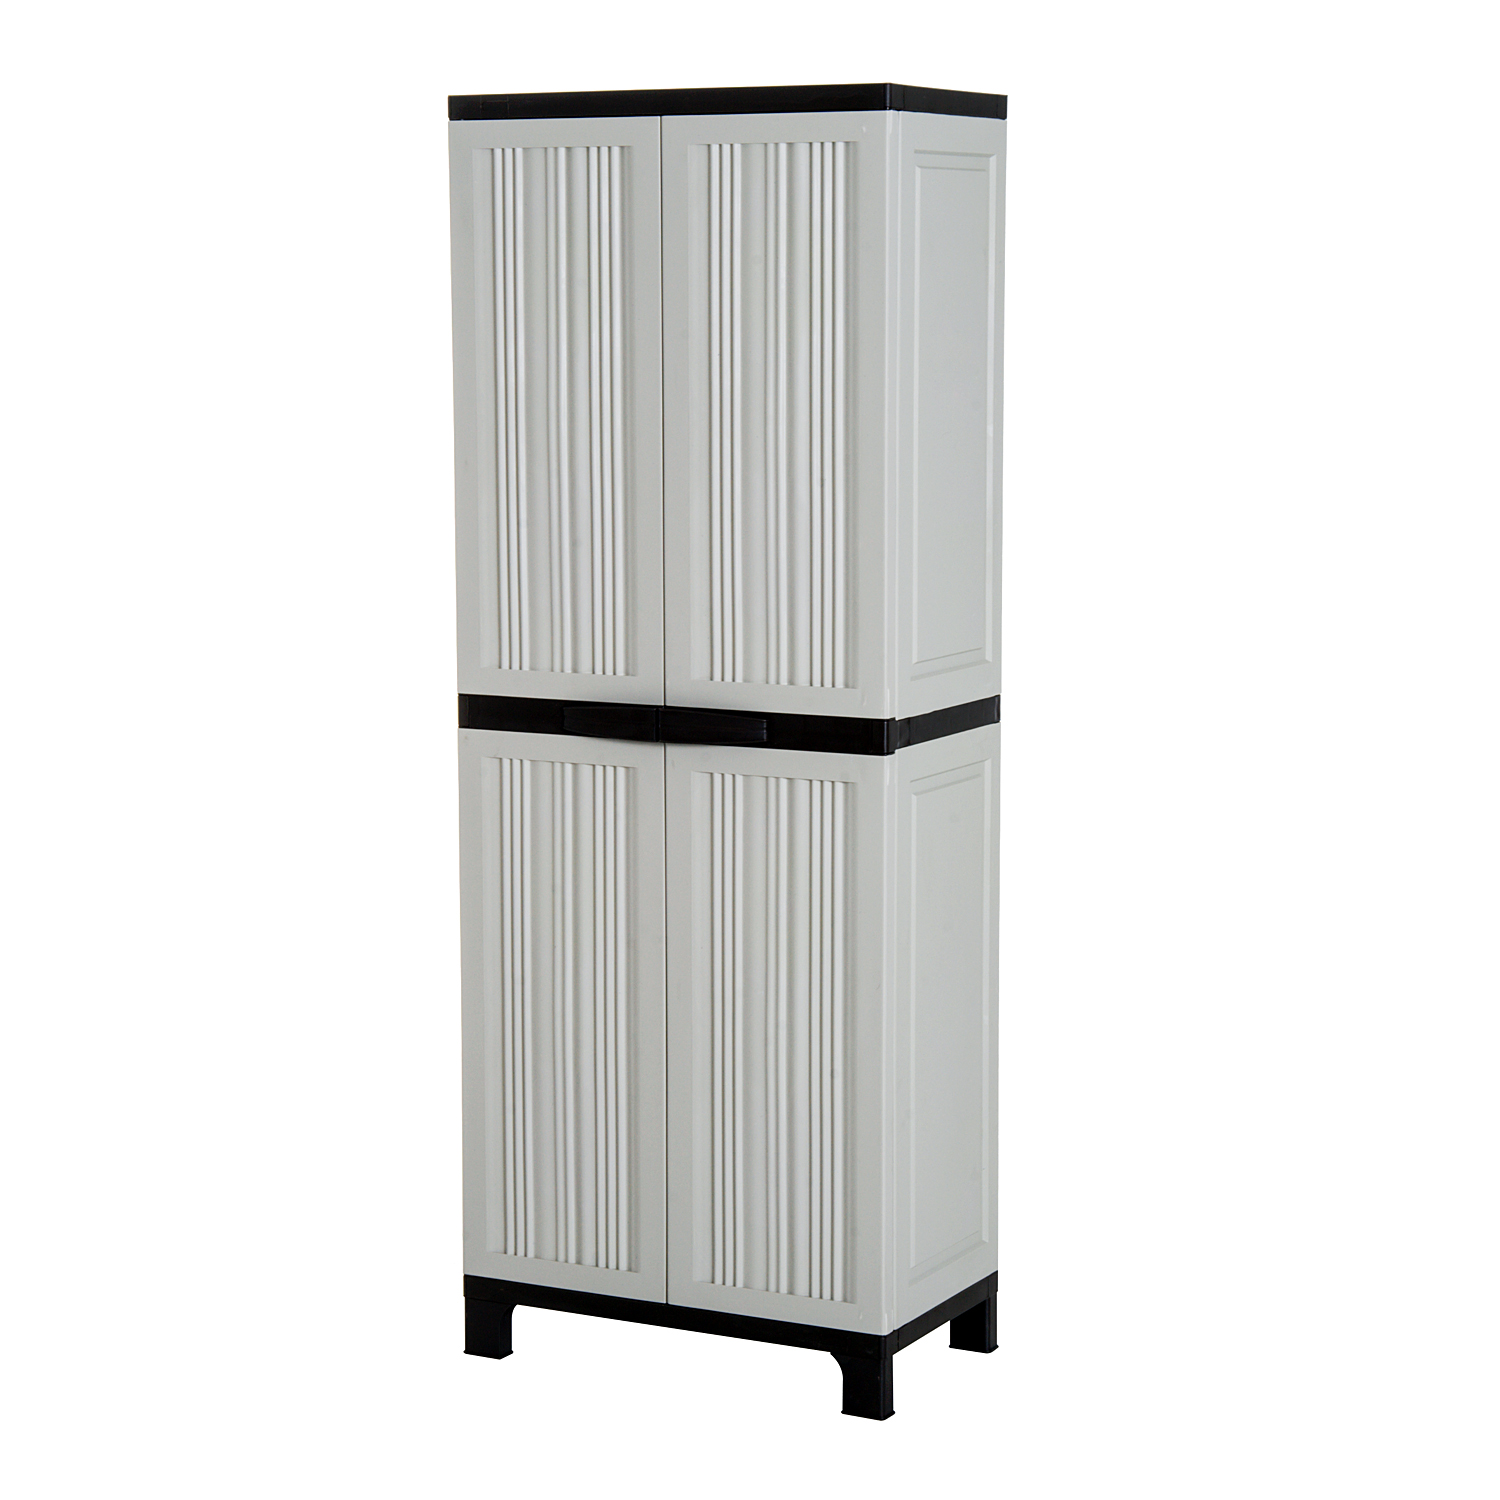 Outsunny Outdoor Waterproof Cabinet With 3 Adjustable Shelves Balcony Terrace Plastic 65 × 37 × 172 Cm